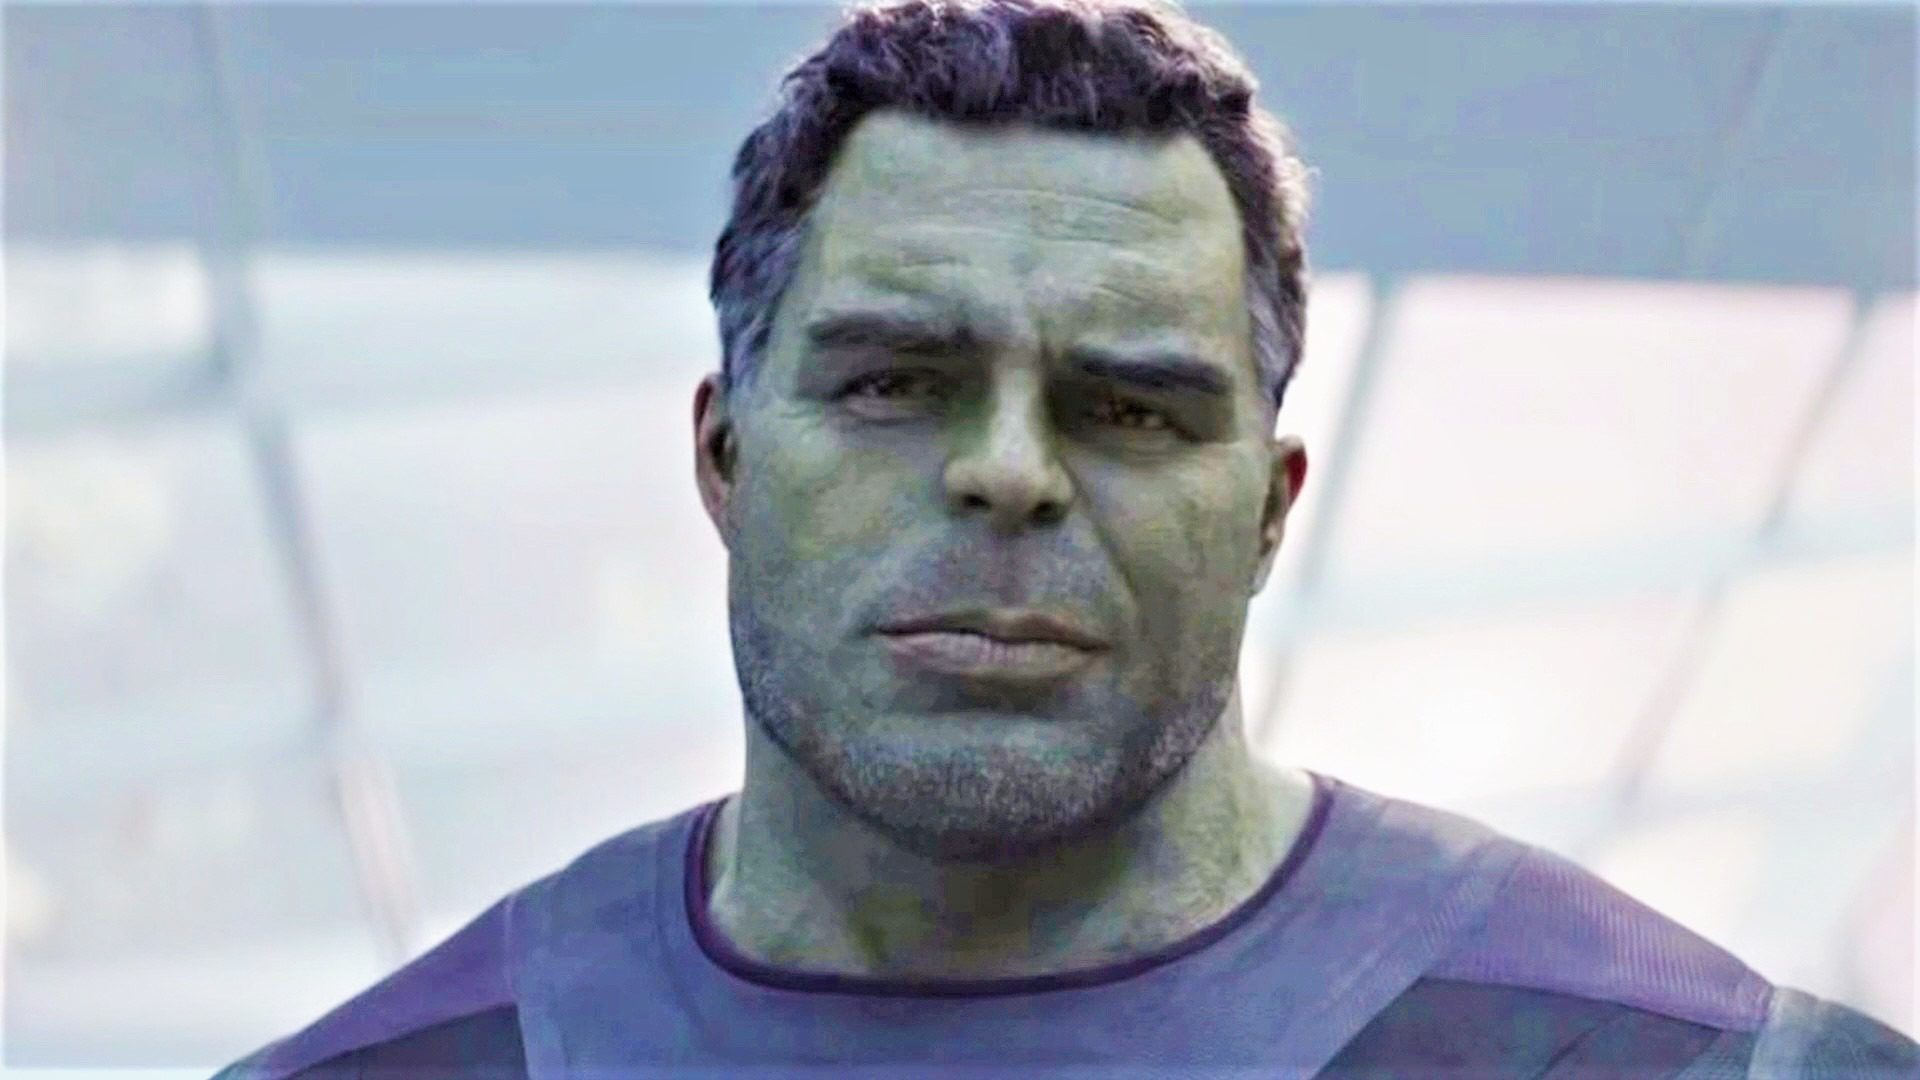 How Marvel Has Continued To Disappoint With The Hulk